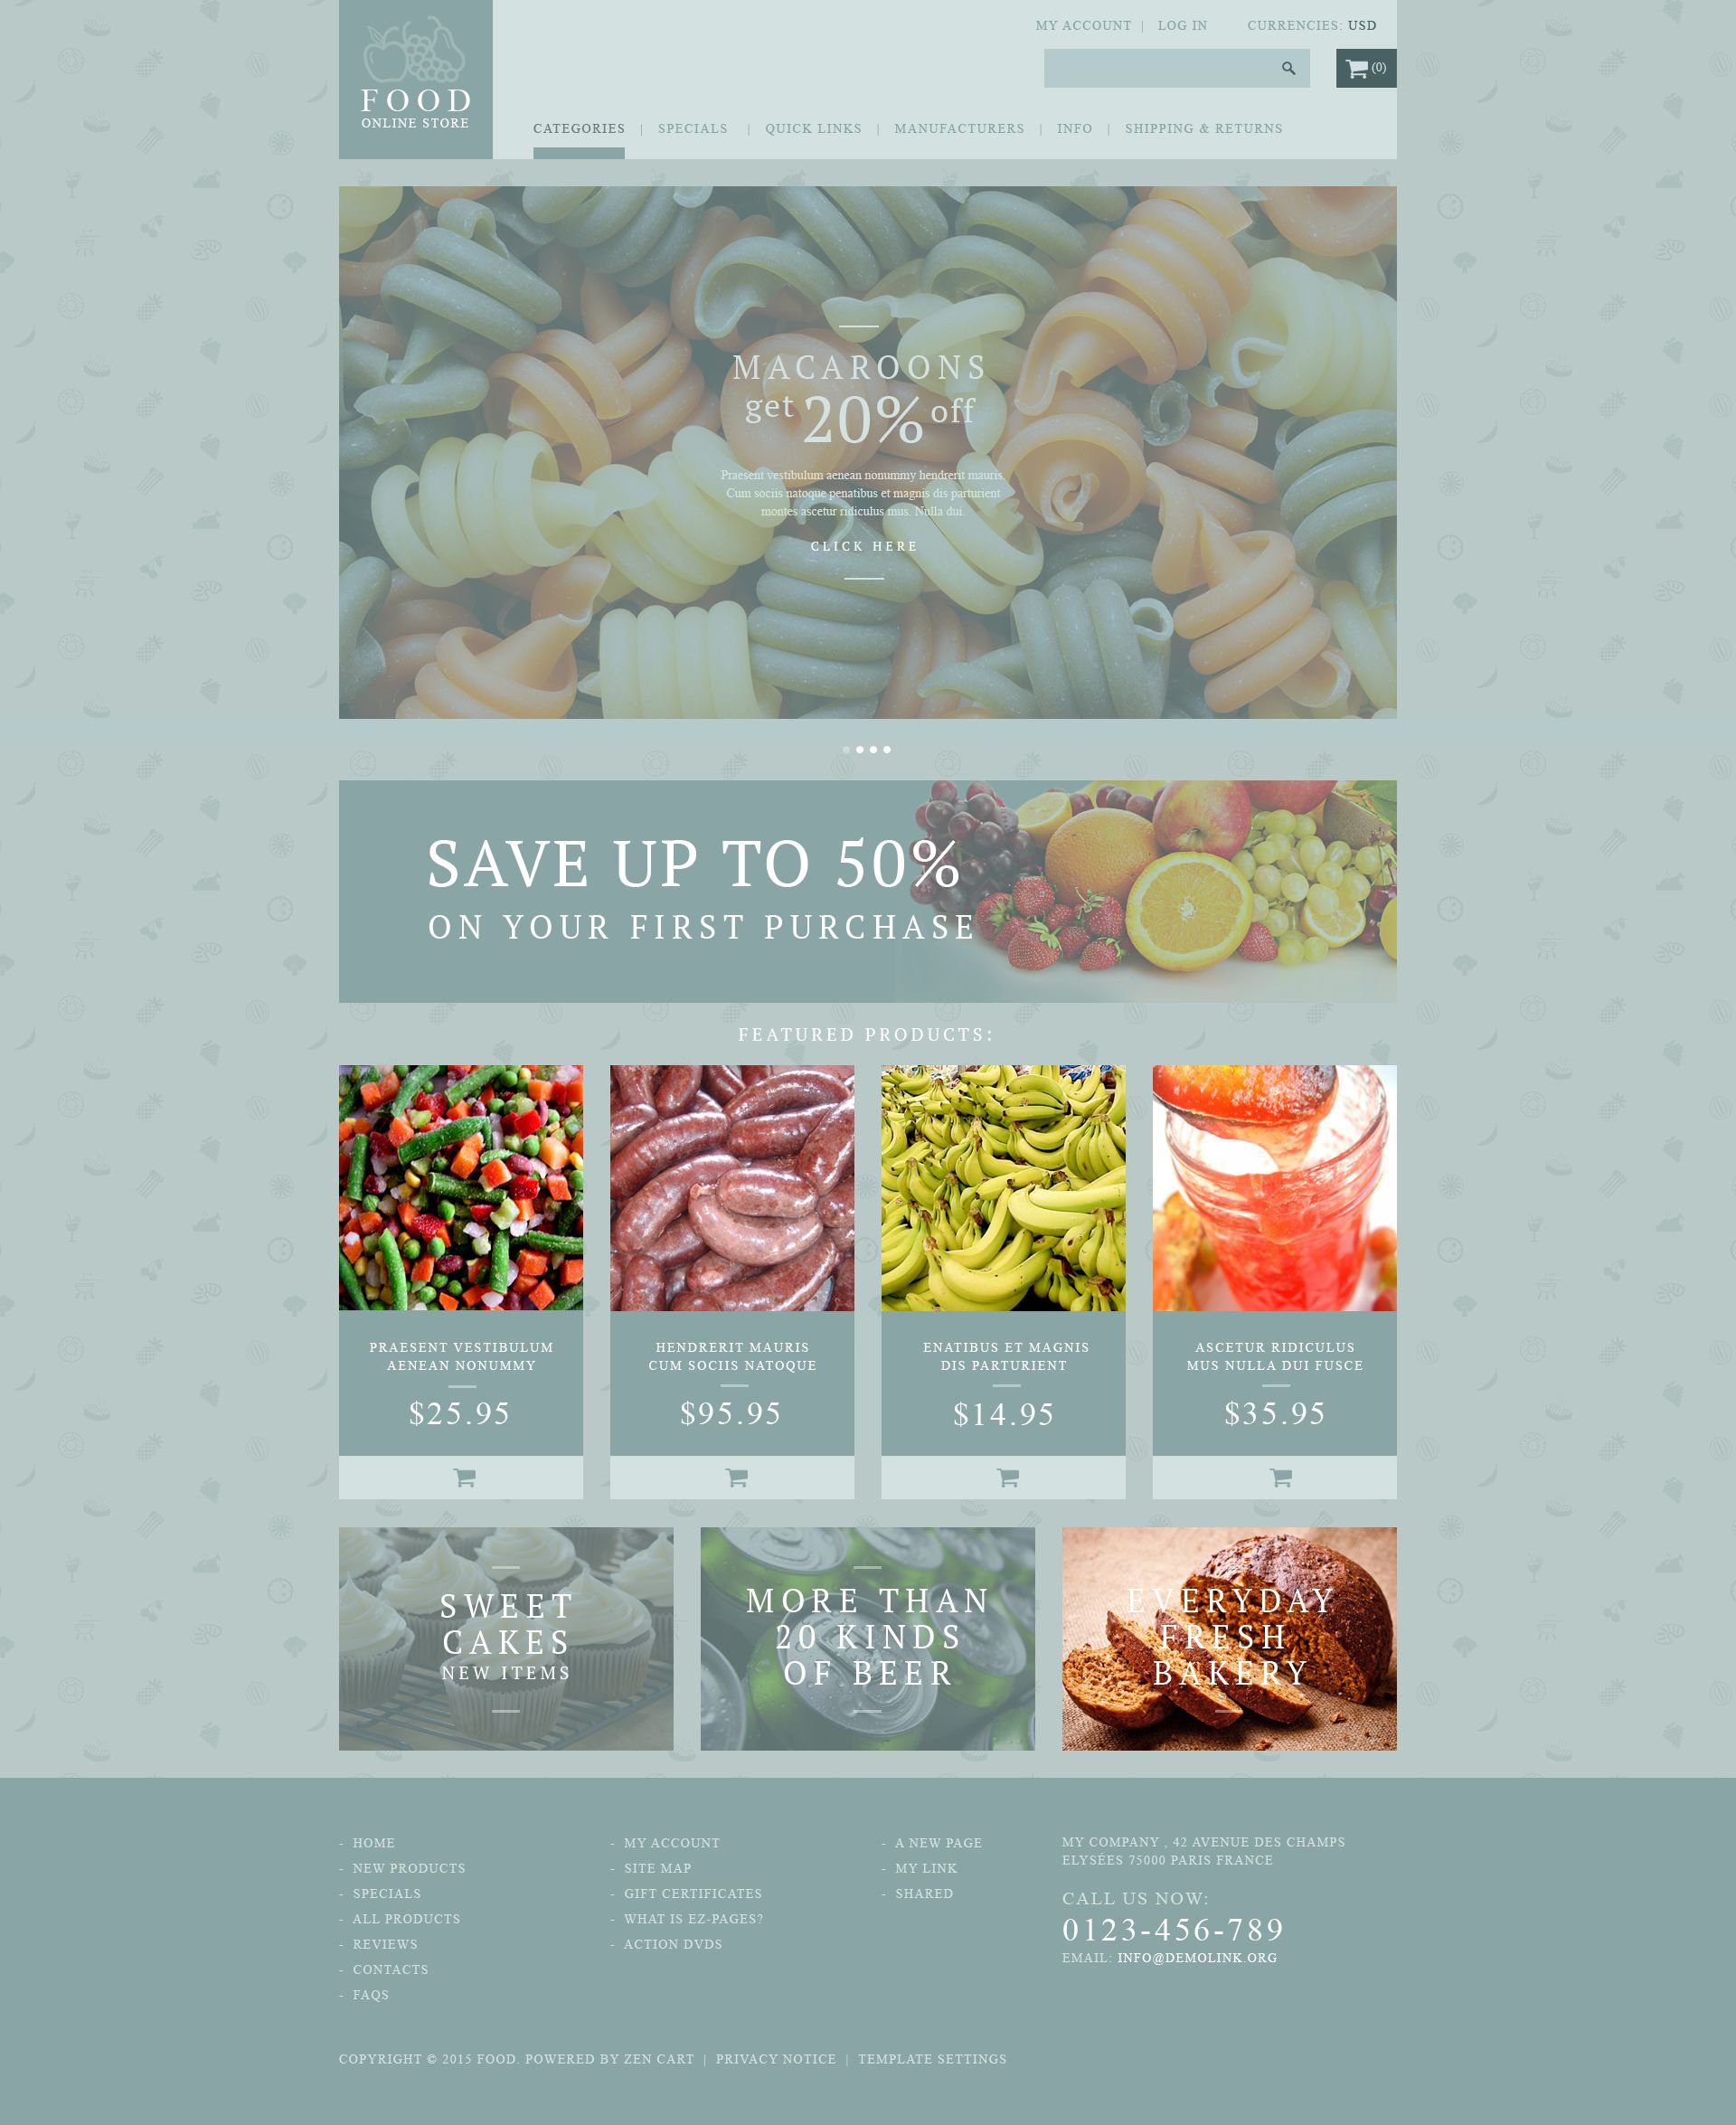 The Food Online Store Zen Cart Design 53886, one of the best ZenCart templates of its kind (food & drink, most popular), also known as food online store ZenCart template, supermarket ZenCart template, fruit ZenCart template, natural company ZenCart template, manufacturer ZenCart template, manufacture ZenCart template, production ZenCart template, fresh ZenCart template, beverage ZenCart template, PSD template ZenCart template, wine ZenCart template, production ZenCart template, cake ZenCart template, cakes ZenCart template, food ZenCart template, feast ZenCart template, tasty ZenCart template, delicious ZenCart template, gourmet ZenCart template, vegetables ZenCart template, fruits and related with food online store, supermarket, fruit, natural company, manufacturer, manufacture, production, fresh, beverage, PSD template, wine, production, cake, cakes, food, feast, tasty, delicious, gourmet, vegetables, fruits, etc.